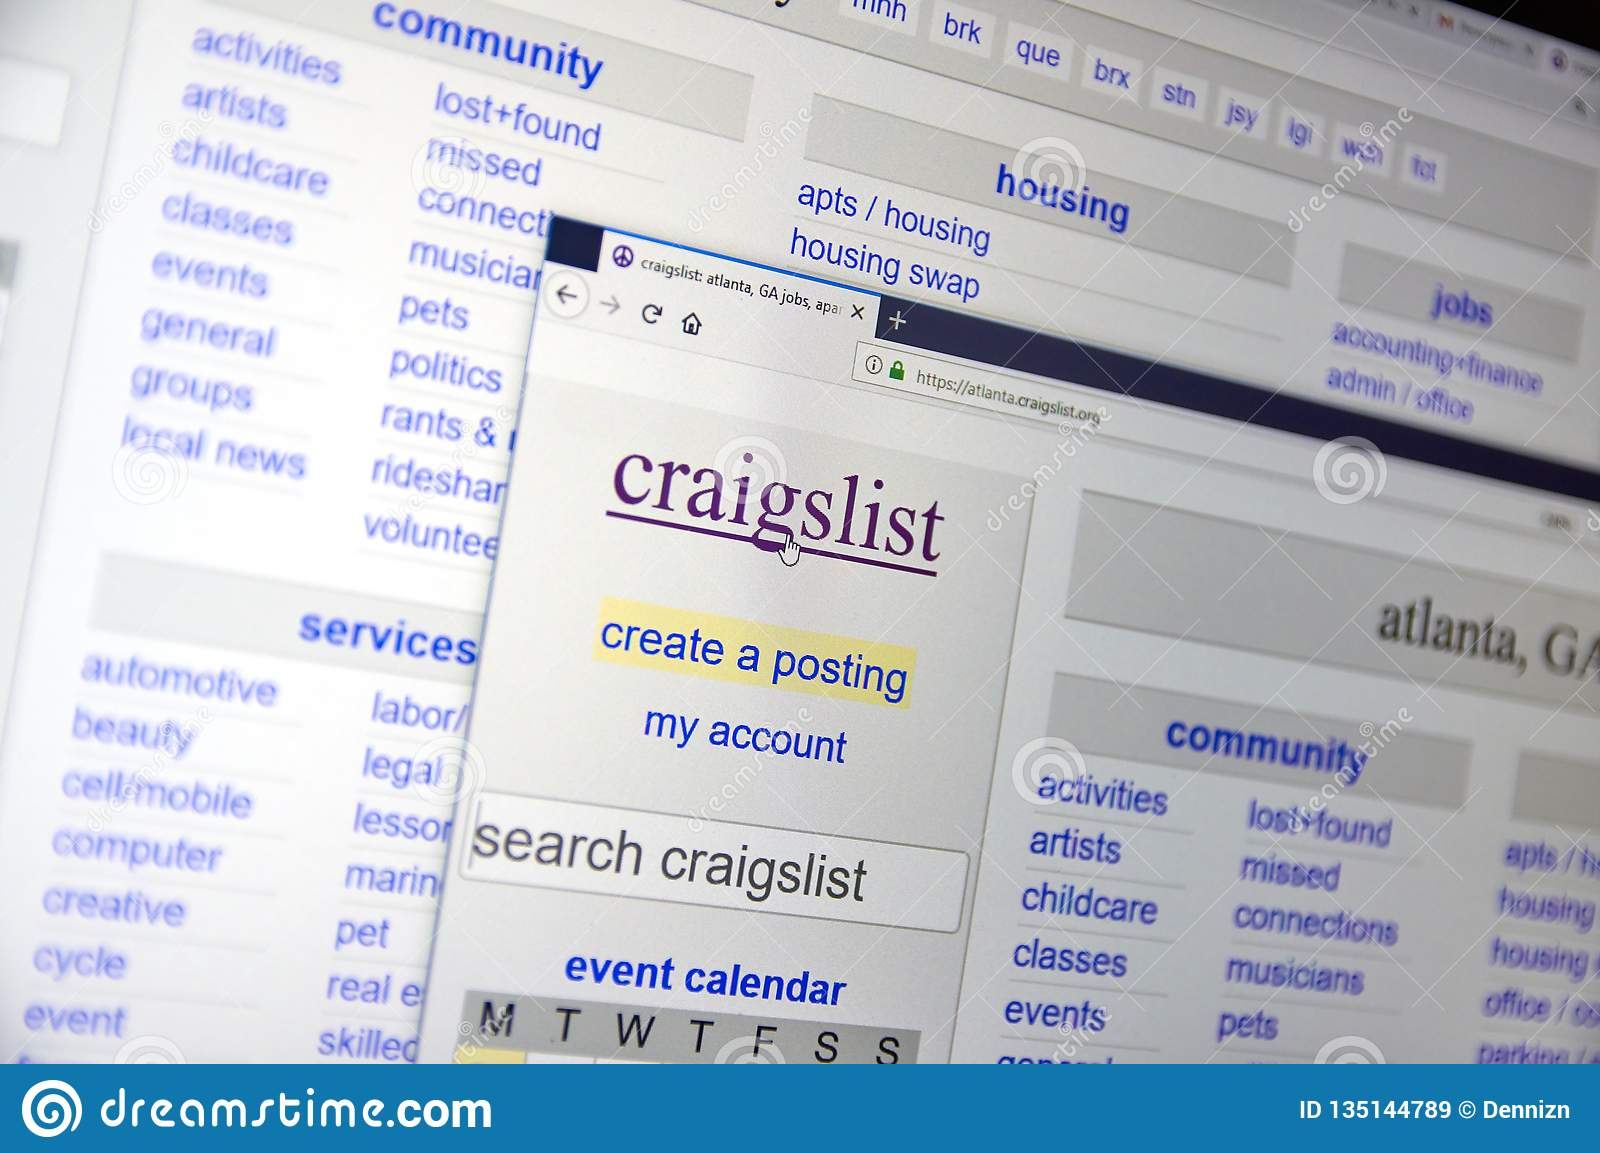 Craigslist Offiicial Home Page Editorial Stock Image - Image